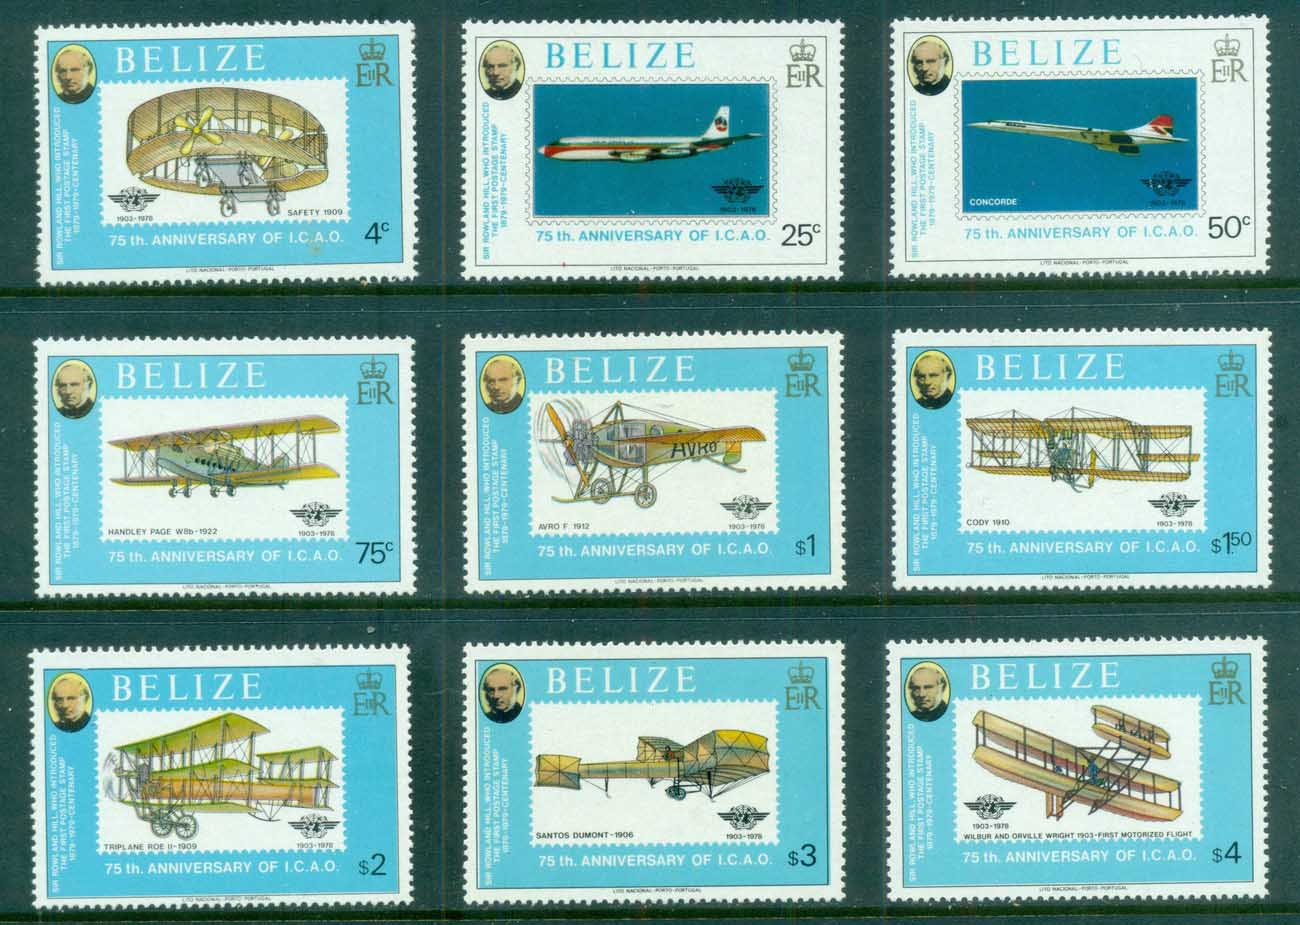 Belize 1979 Powrered Flight 75th Anniv., Rowland Hill MUH